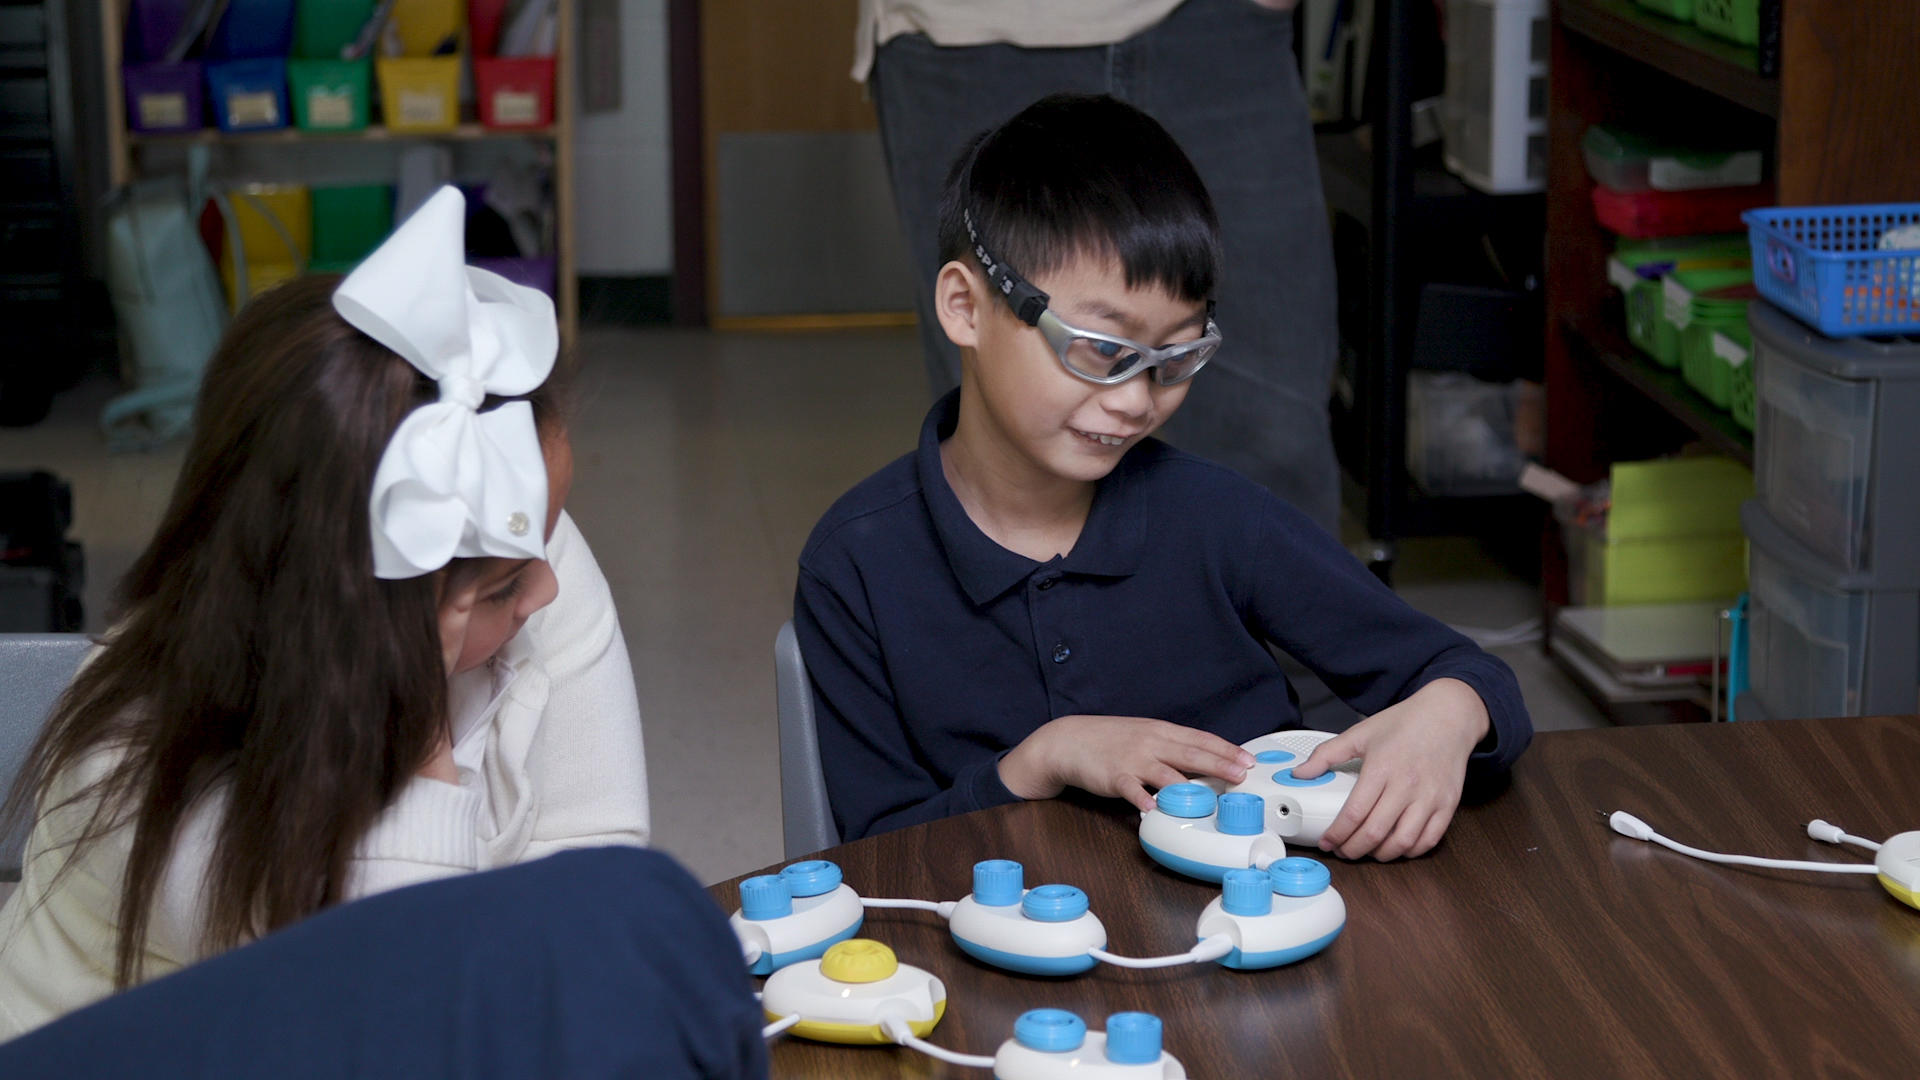 Video: Microsoft tech teaches children who are blind how to code